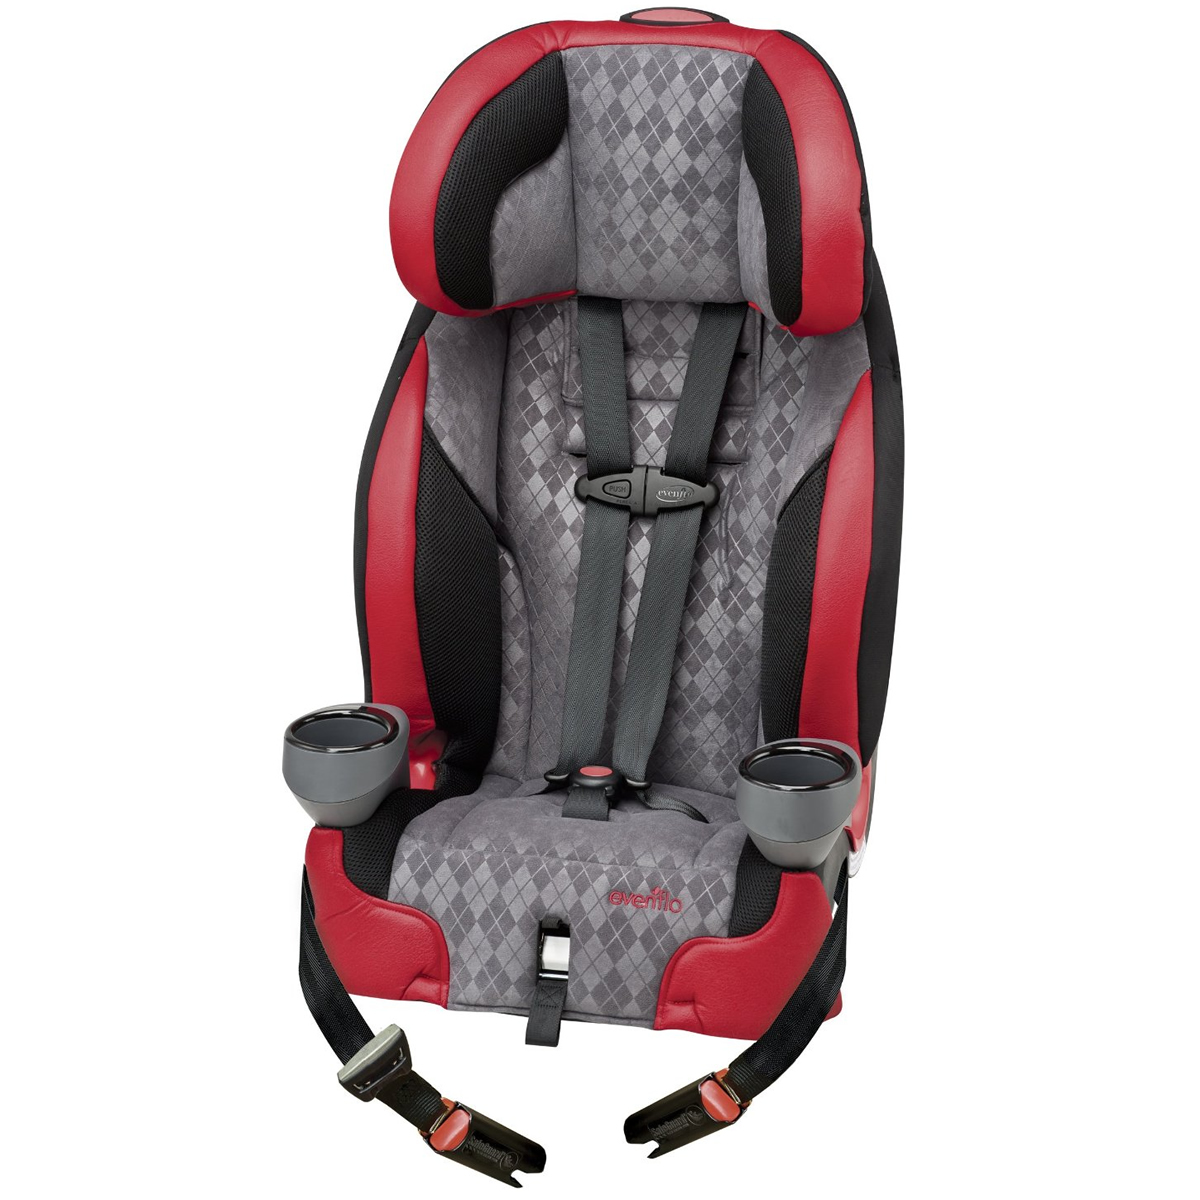 38551076 likewise Best Swing Sets Review together with Toy Caboose Stroller moreover They See Us Strollin likewise 7m78plme. on car seat stroller combo for s